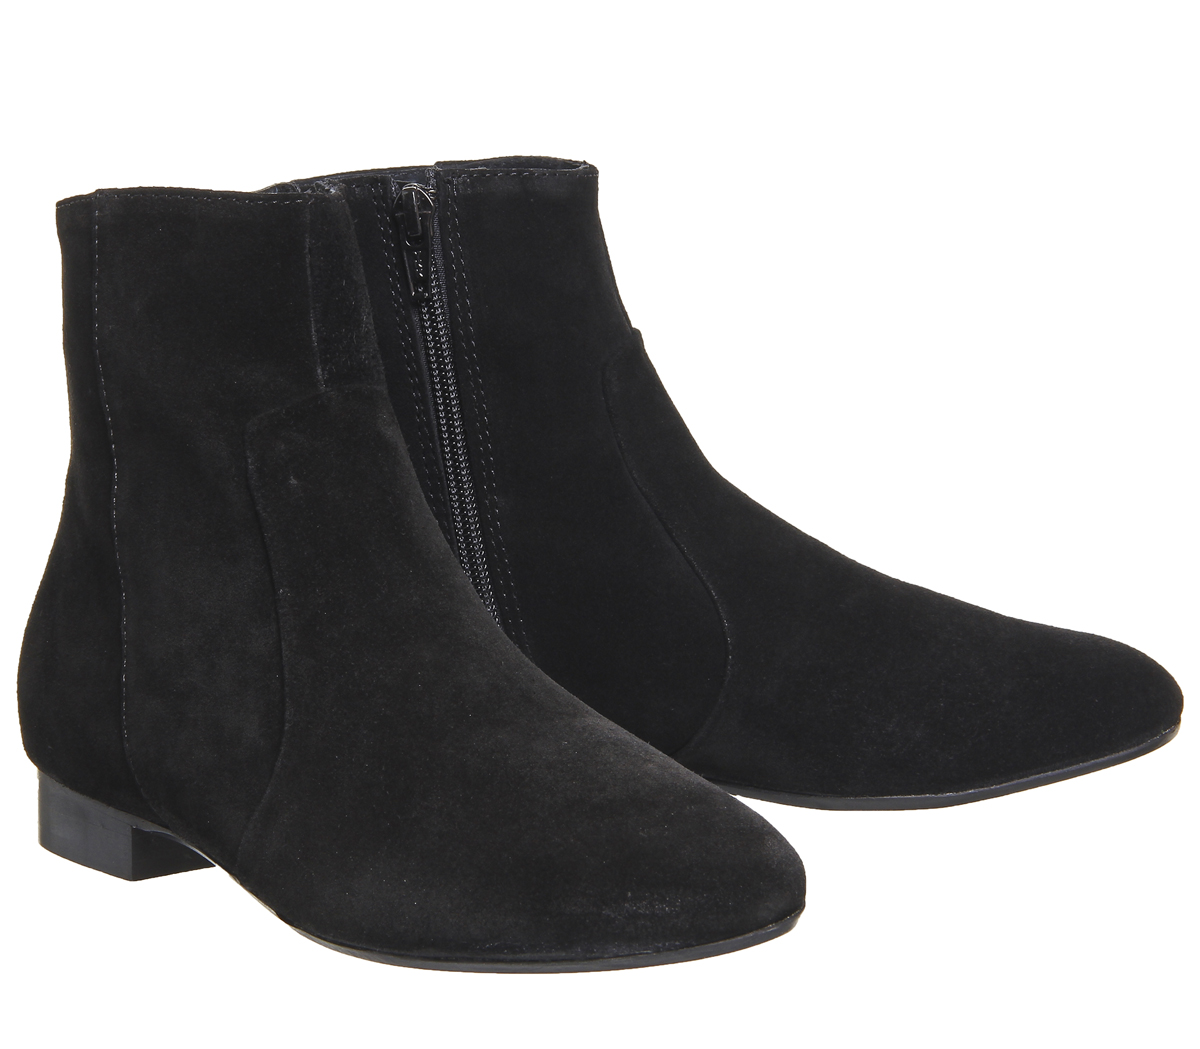 Womens-Office-Avenue-Flat-Casual-Boots-BLACK-SUEDE-Boots